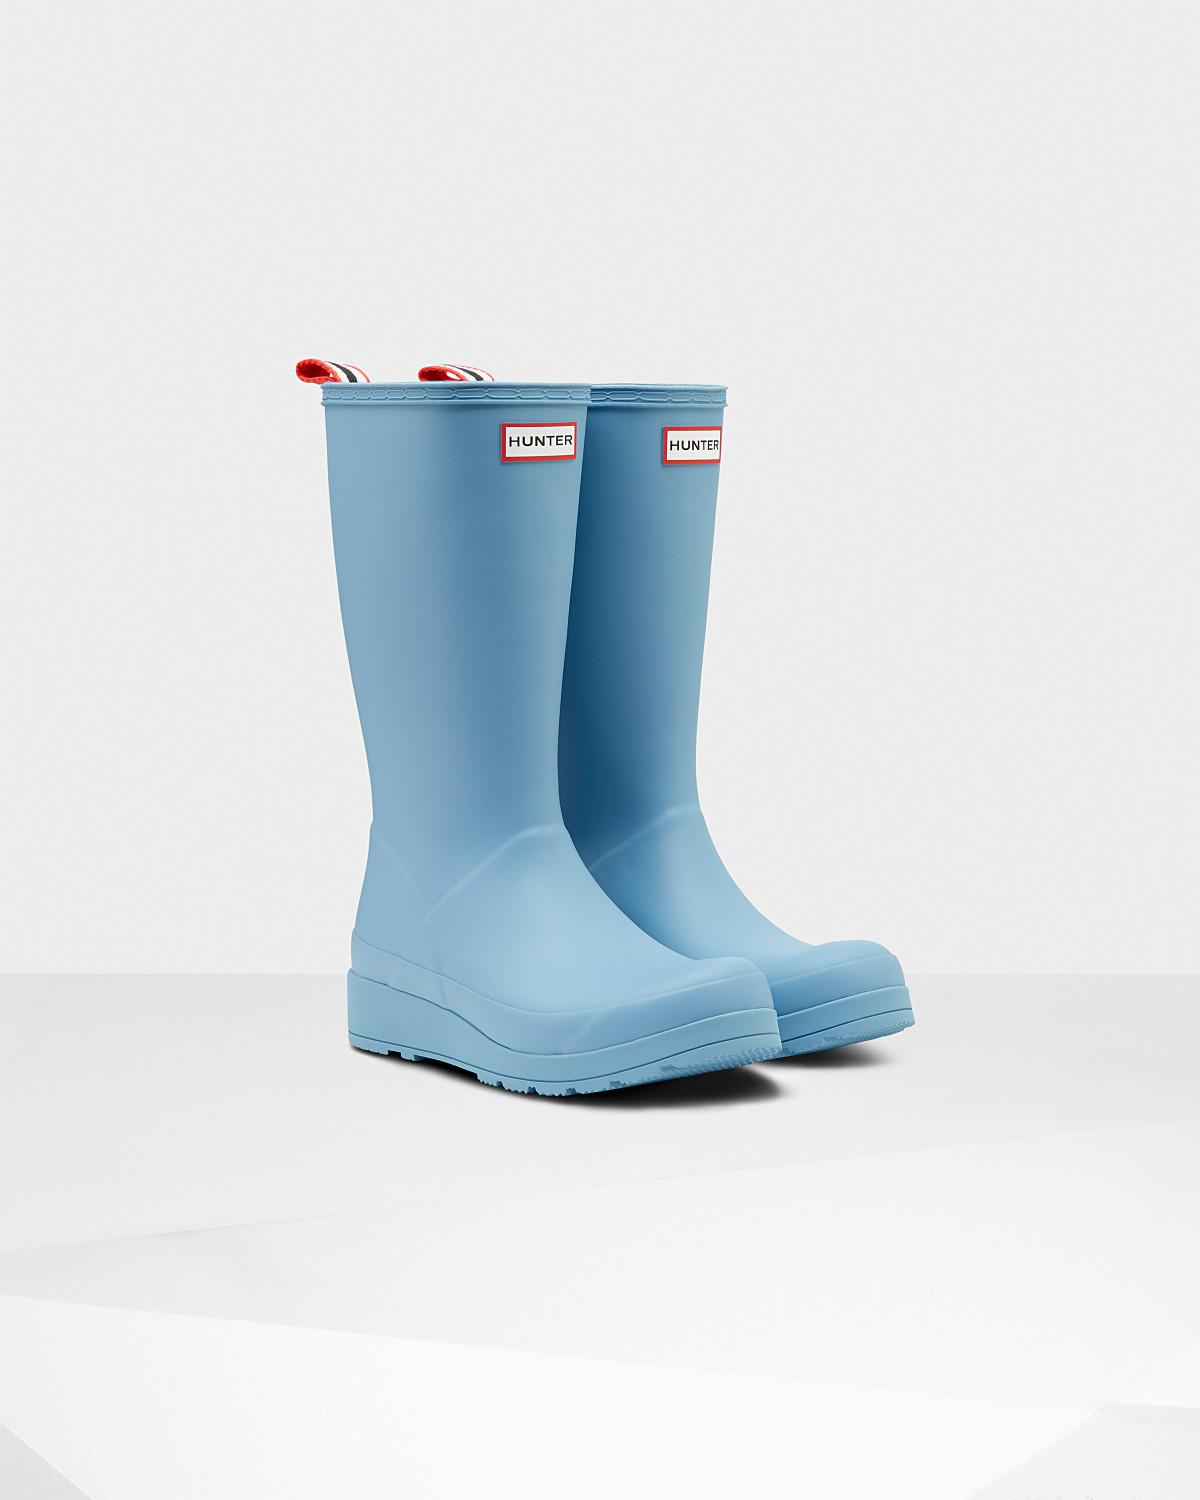 Image result for peak blue hunter rain boot lord and taylor